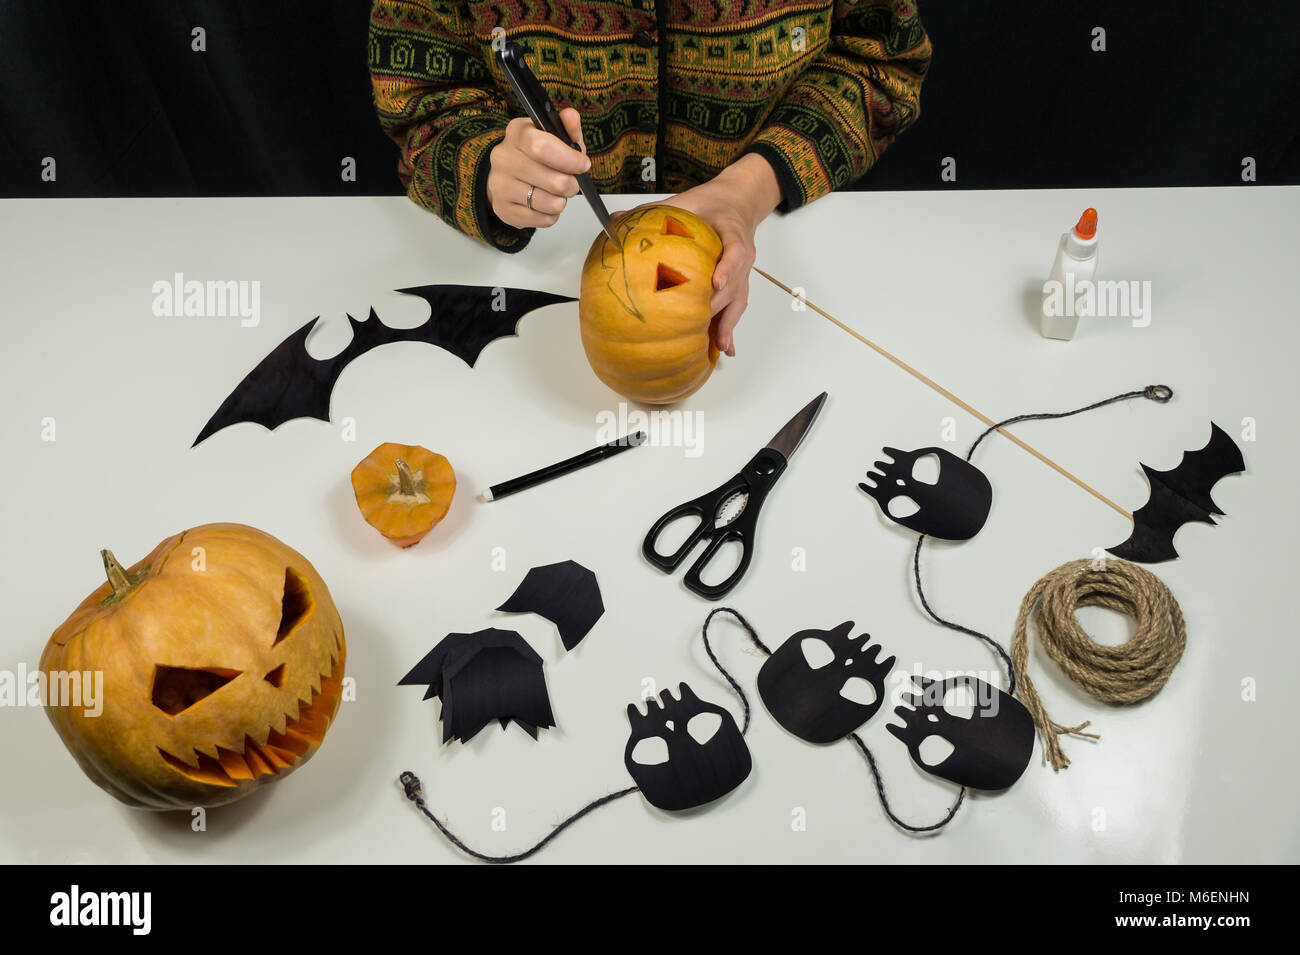 Making halloween decorations including paper figures, skulls and cutting scary faces of pumpkins Stock Photo